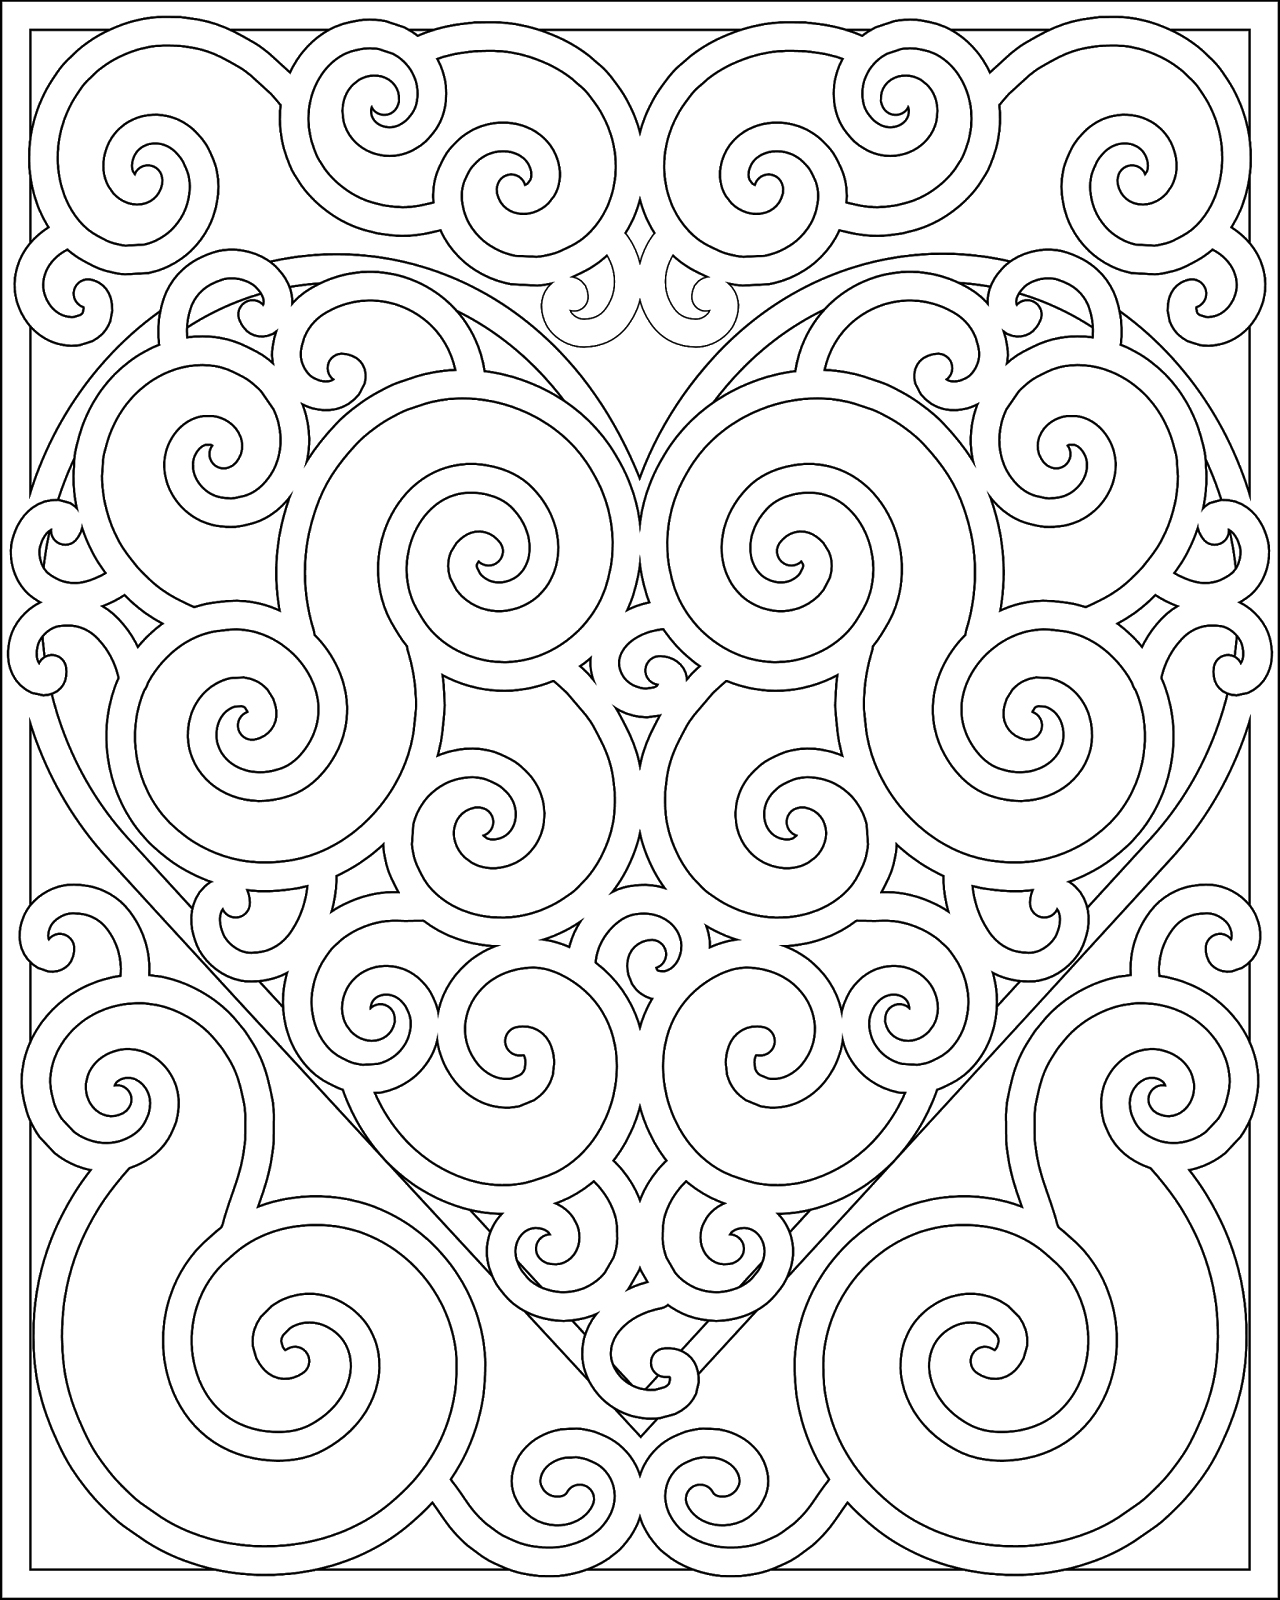 patterns to color in cat coloring pages cat coloring page animal coloring to patterns color in